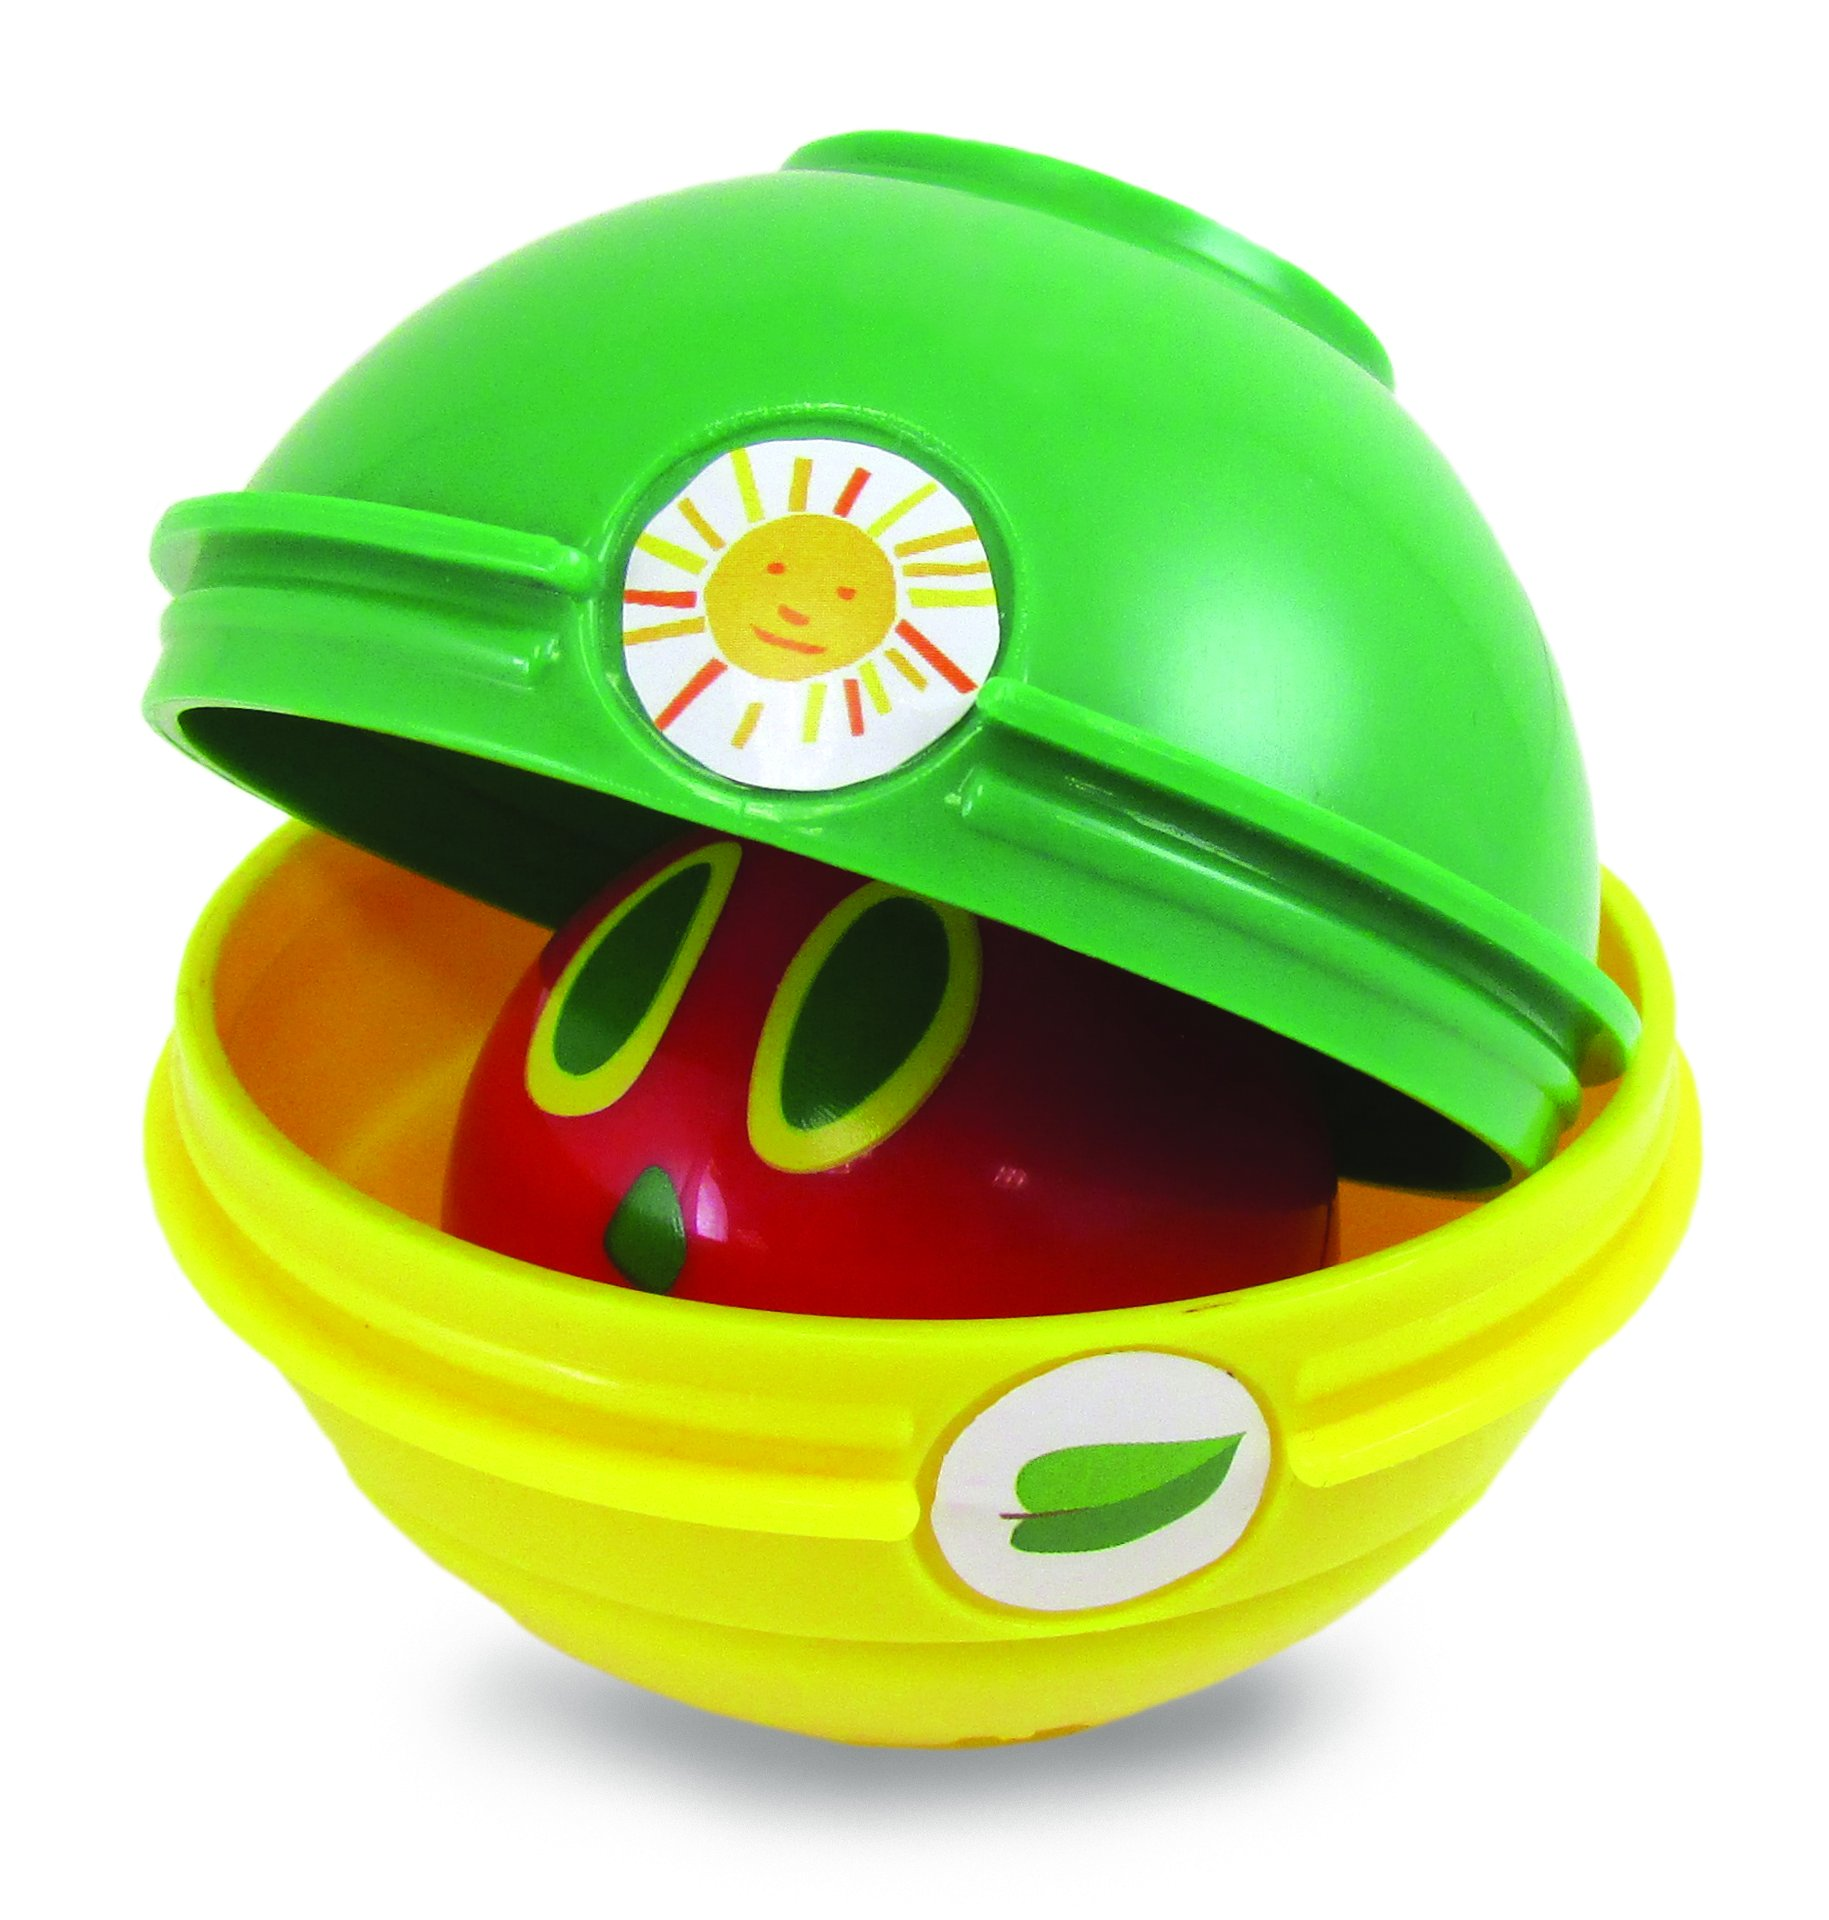 World of Eric Carle, The Very Hungry Caterpillar Stacking/Nesting/Chime Ball Toy